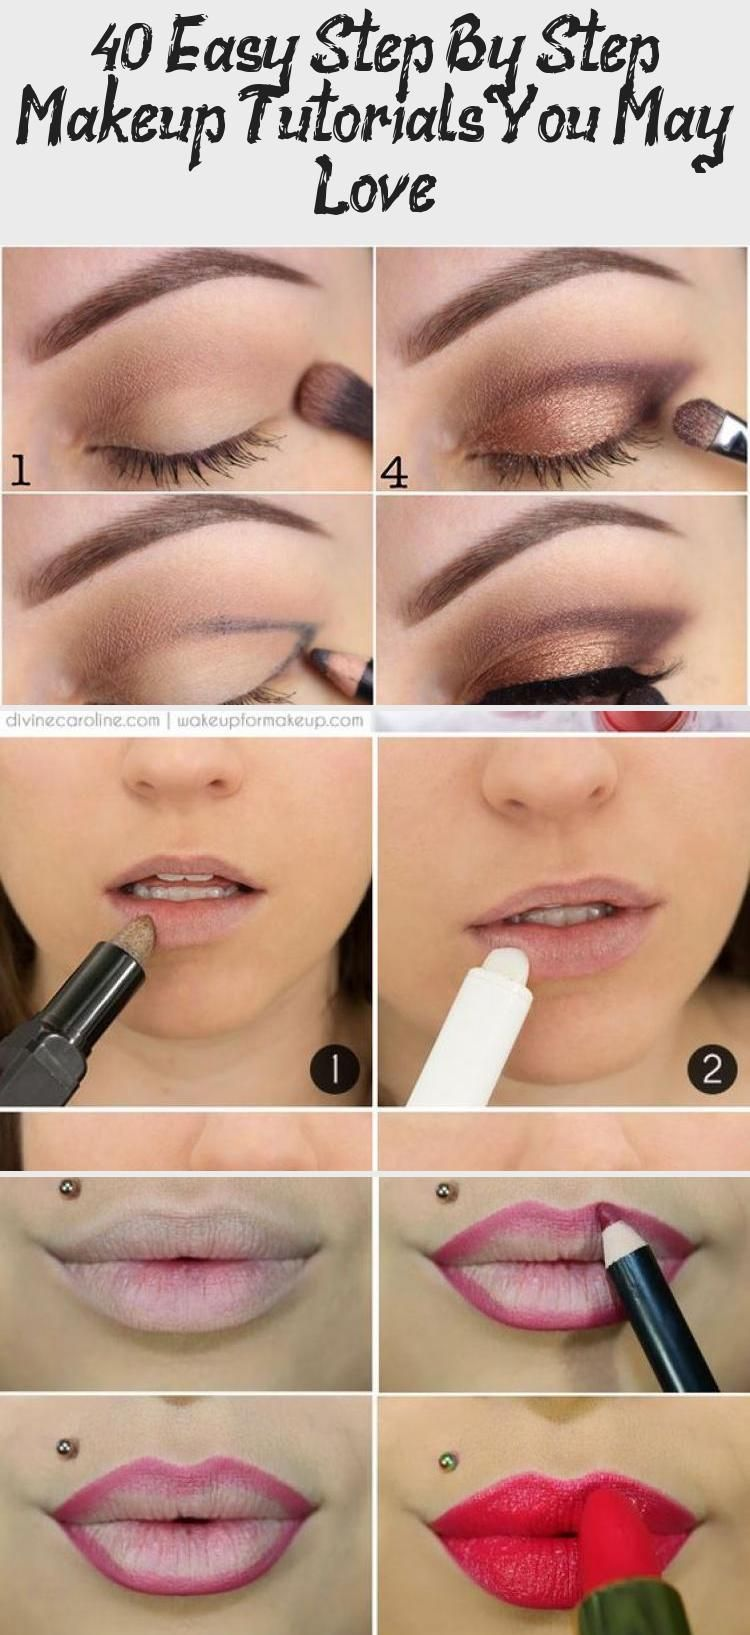 40 Easy Step By Step Makeup Tutorials You May Love Make